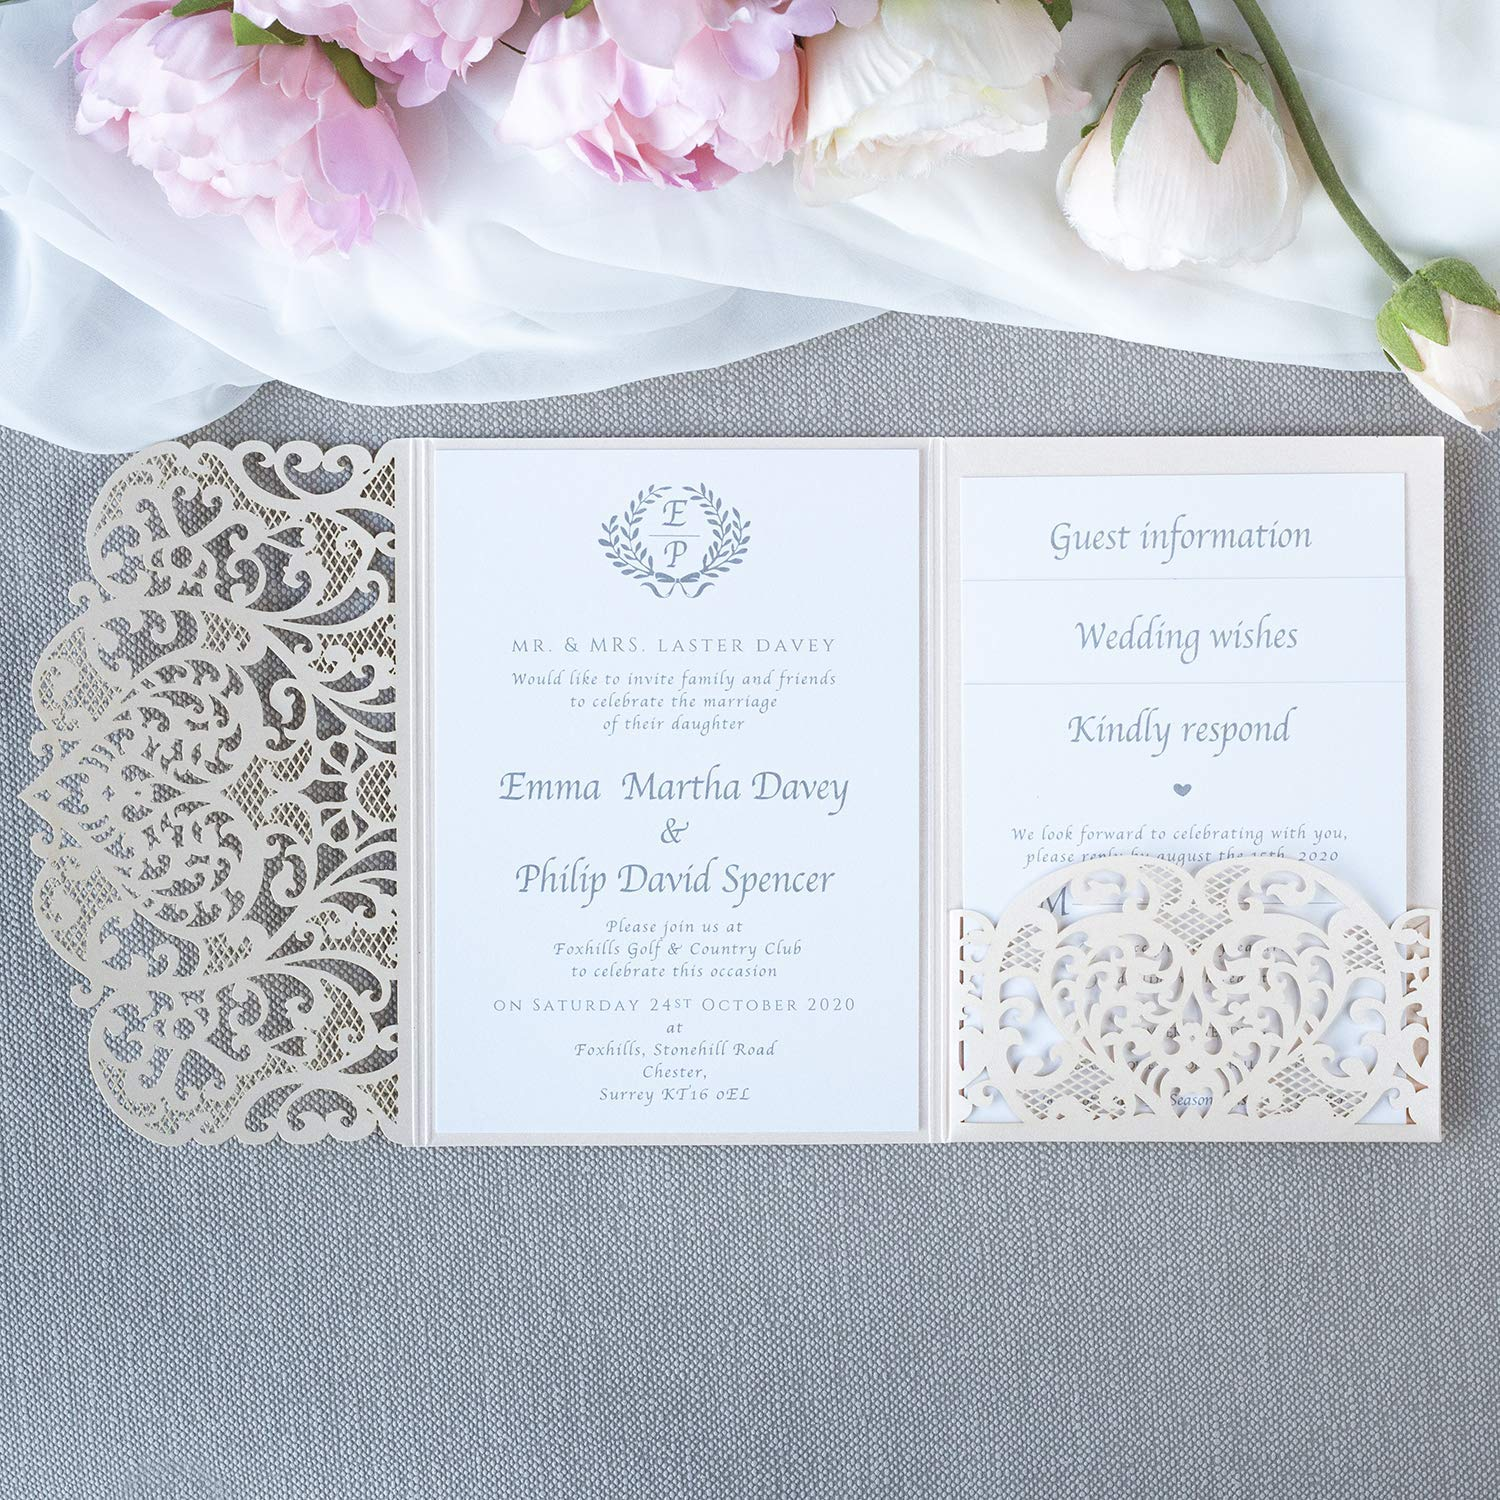 Amazon.com: 50 Cards Pack Peach Pocket DIY Laser Cut Wedding Invitations  with Envelopes Day Invite, Evening Invite, Guest Information, RSVP: Handmade